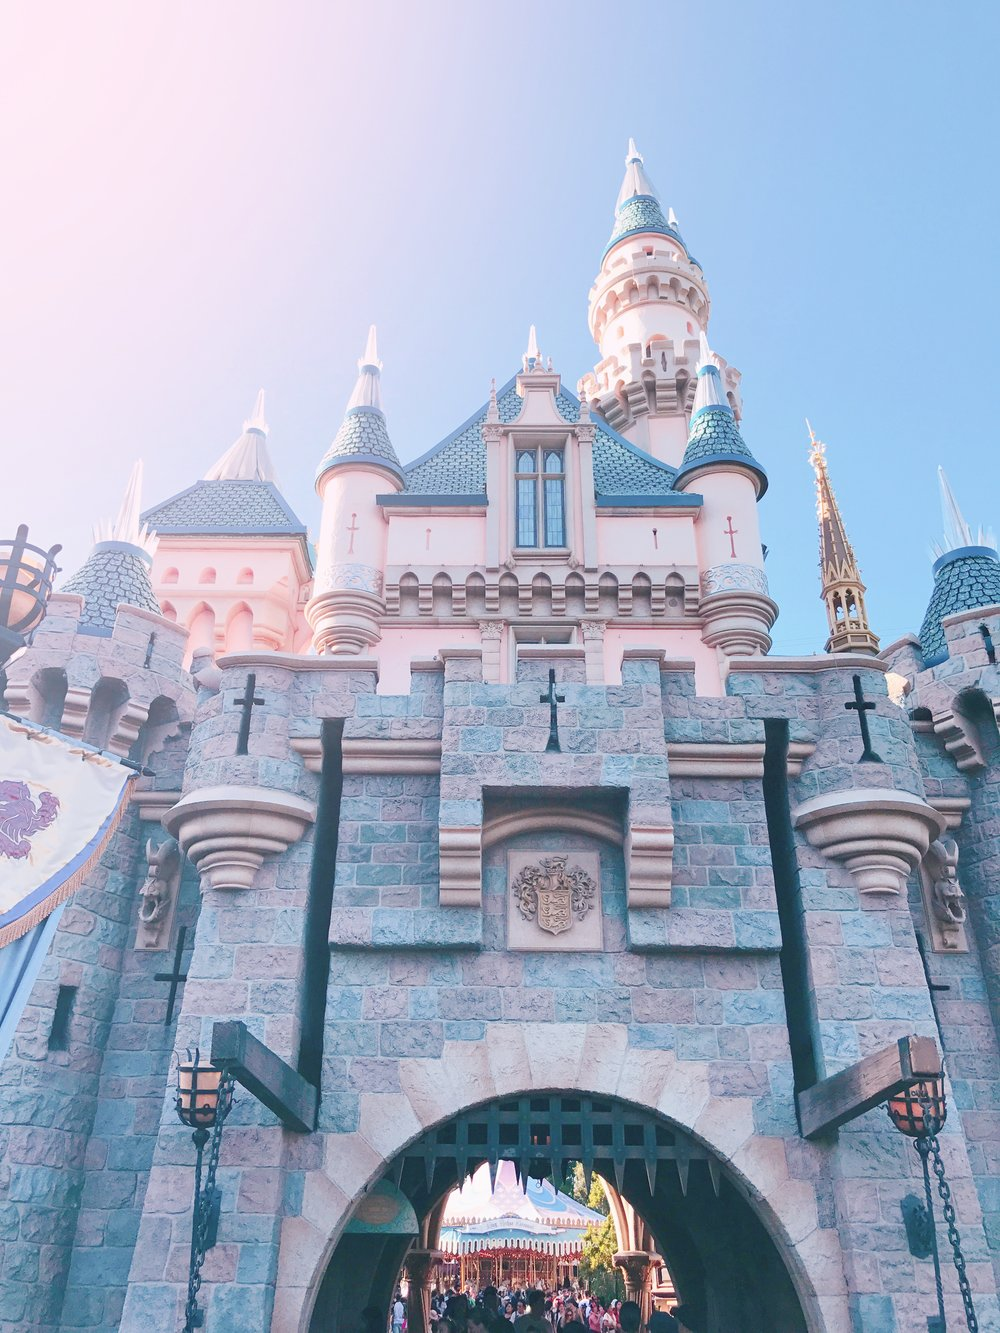 Disneyland - Check out the latest event at Disneyland!